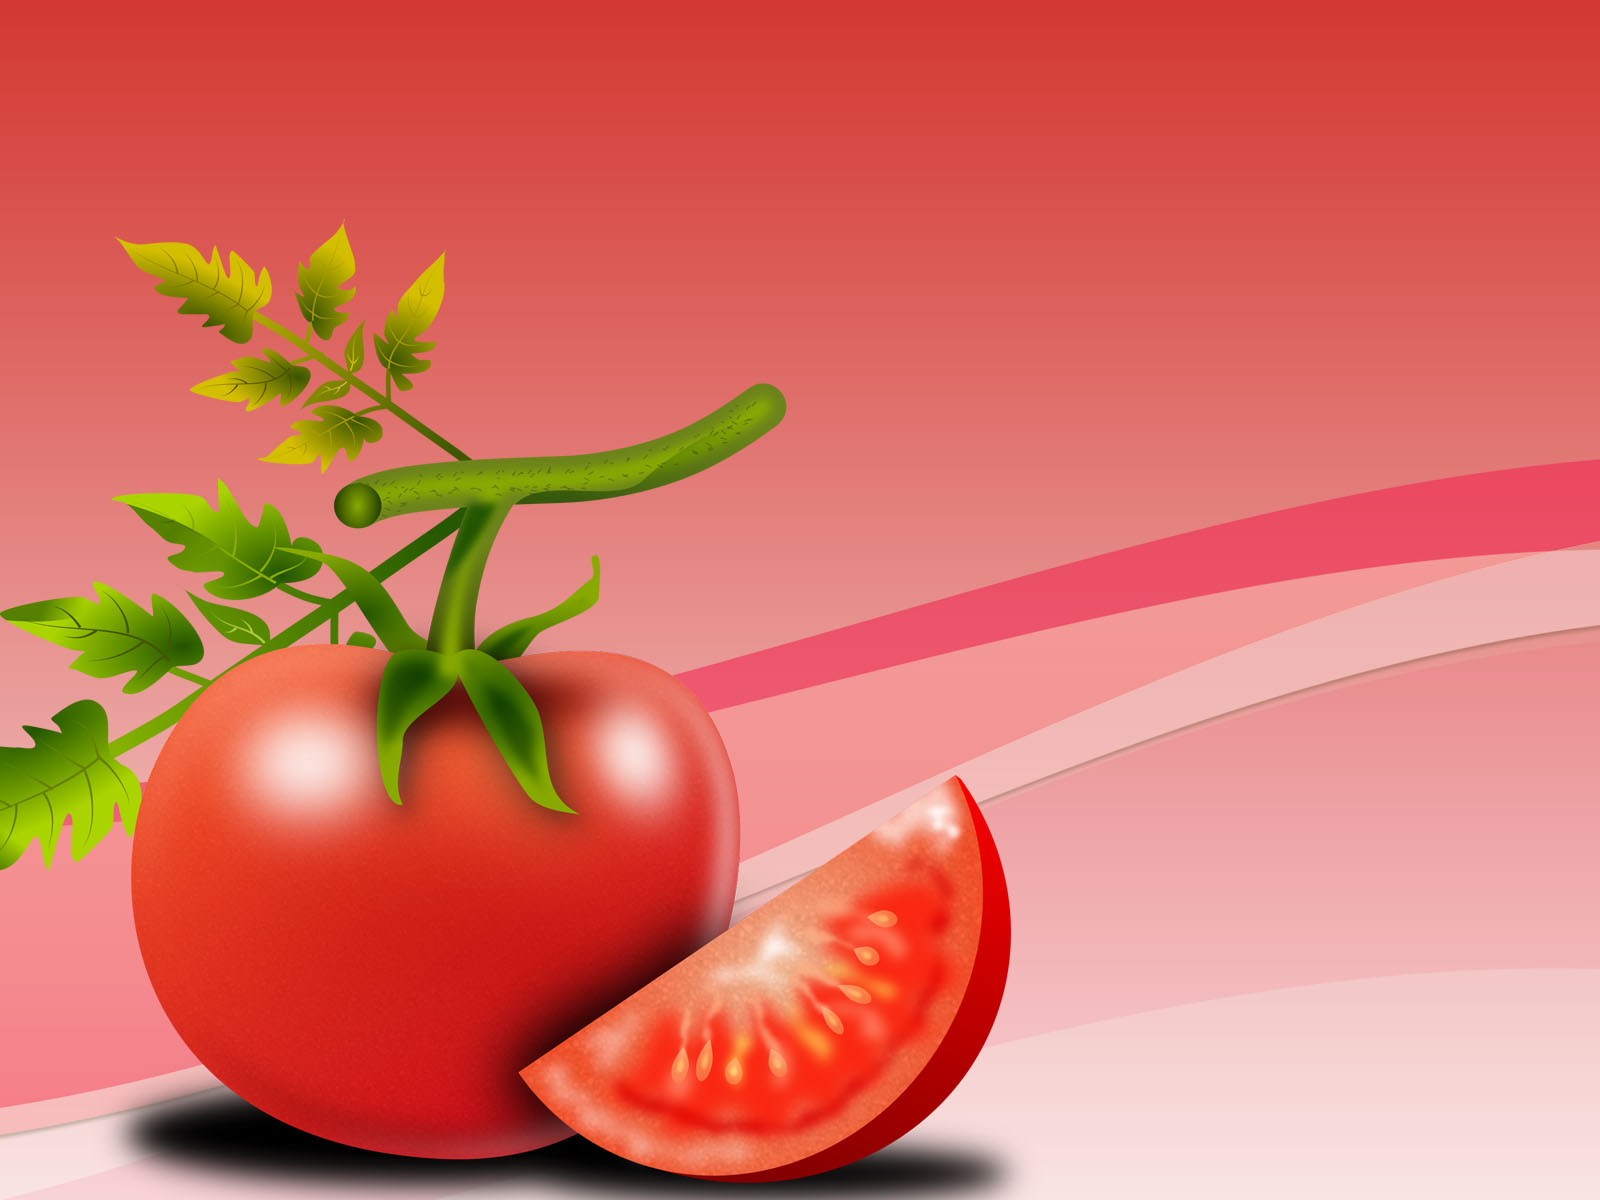 Tomato Foods Powerpoint Backgrounds